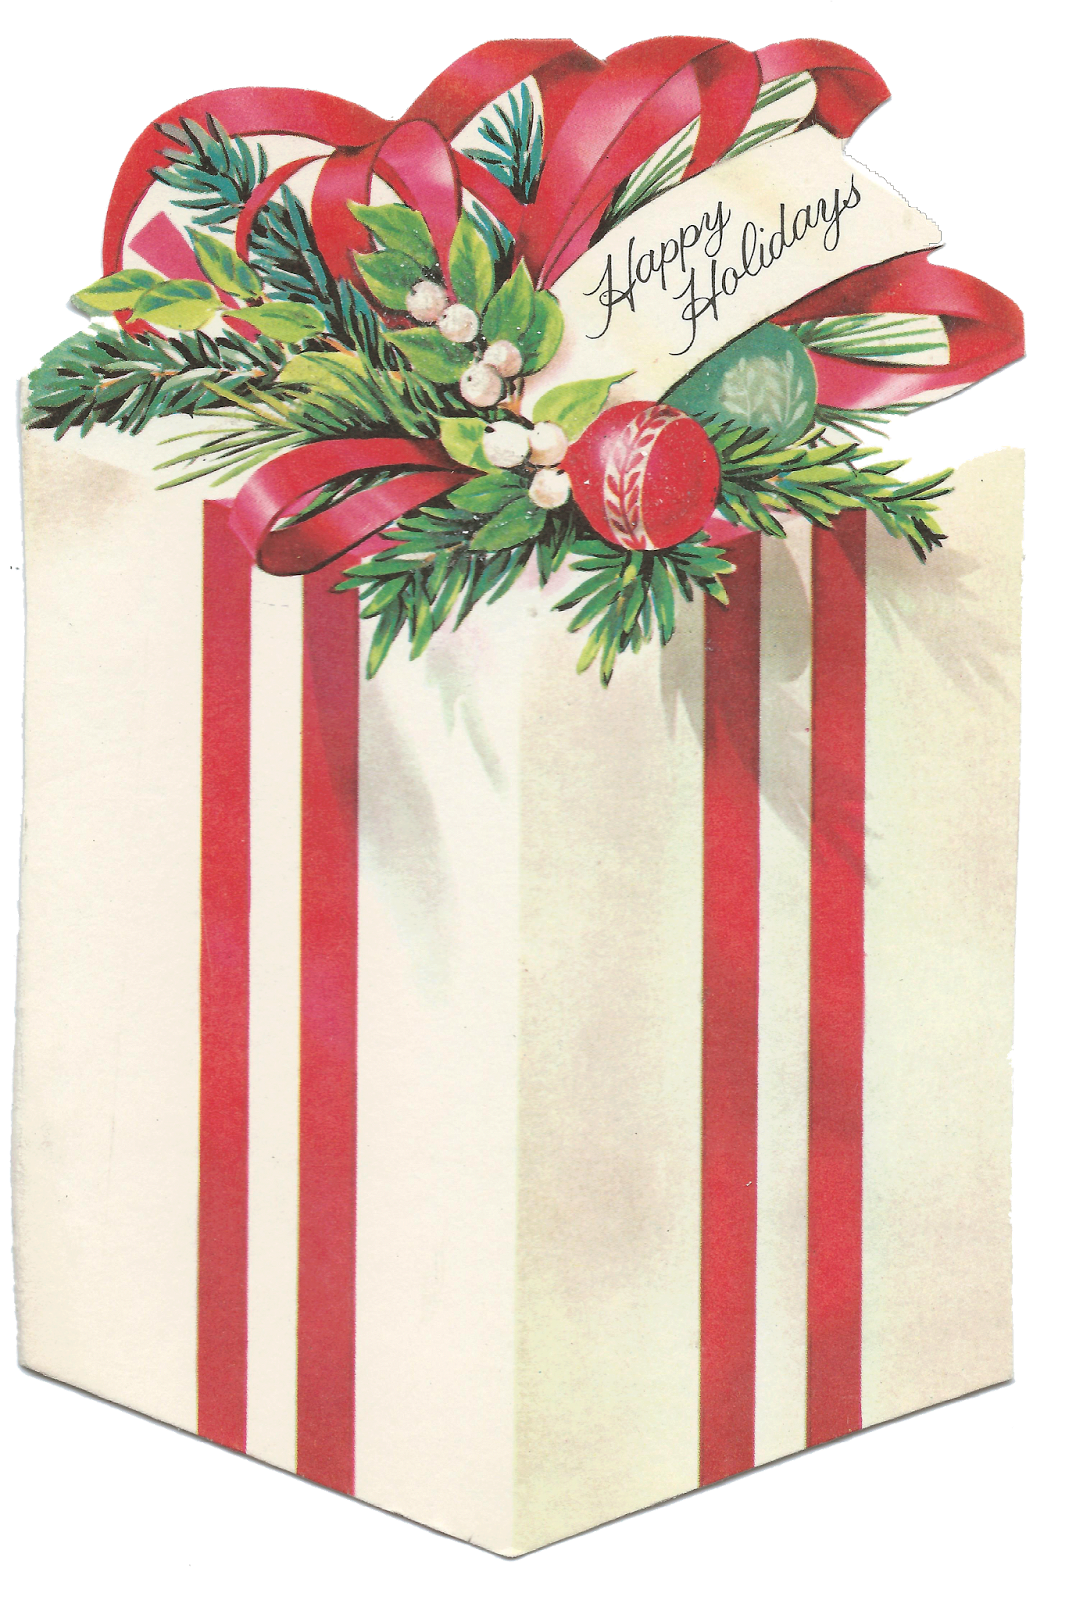 Clipart farm christmas. Vintage present gift package